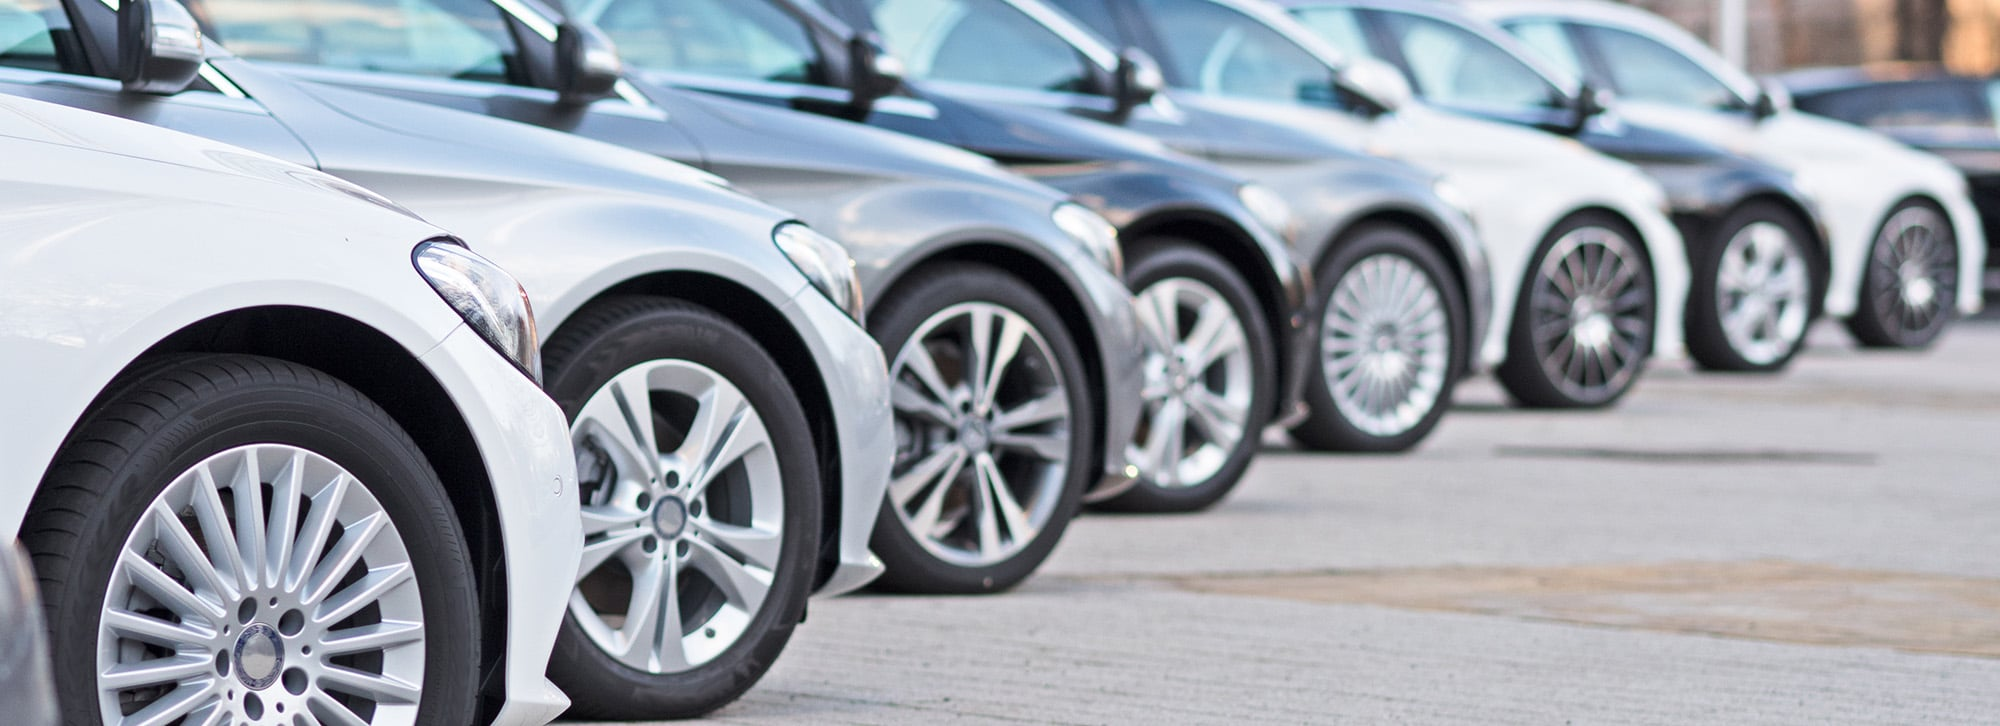 line of chauffeur cars for chauffeurs who use chauffeur dispatch software